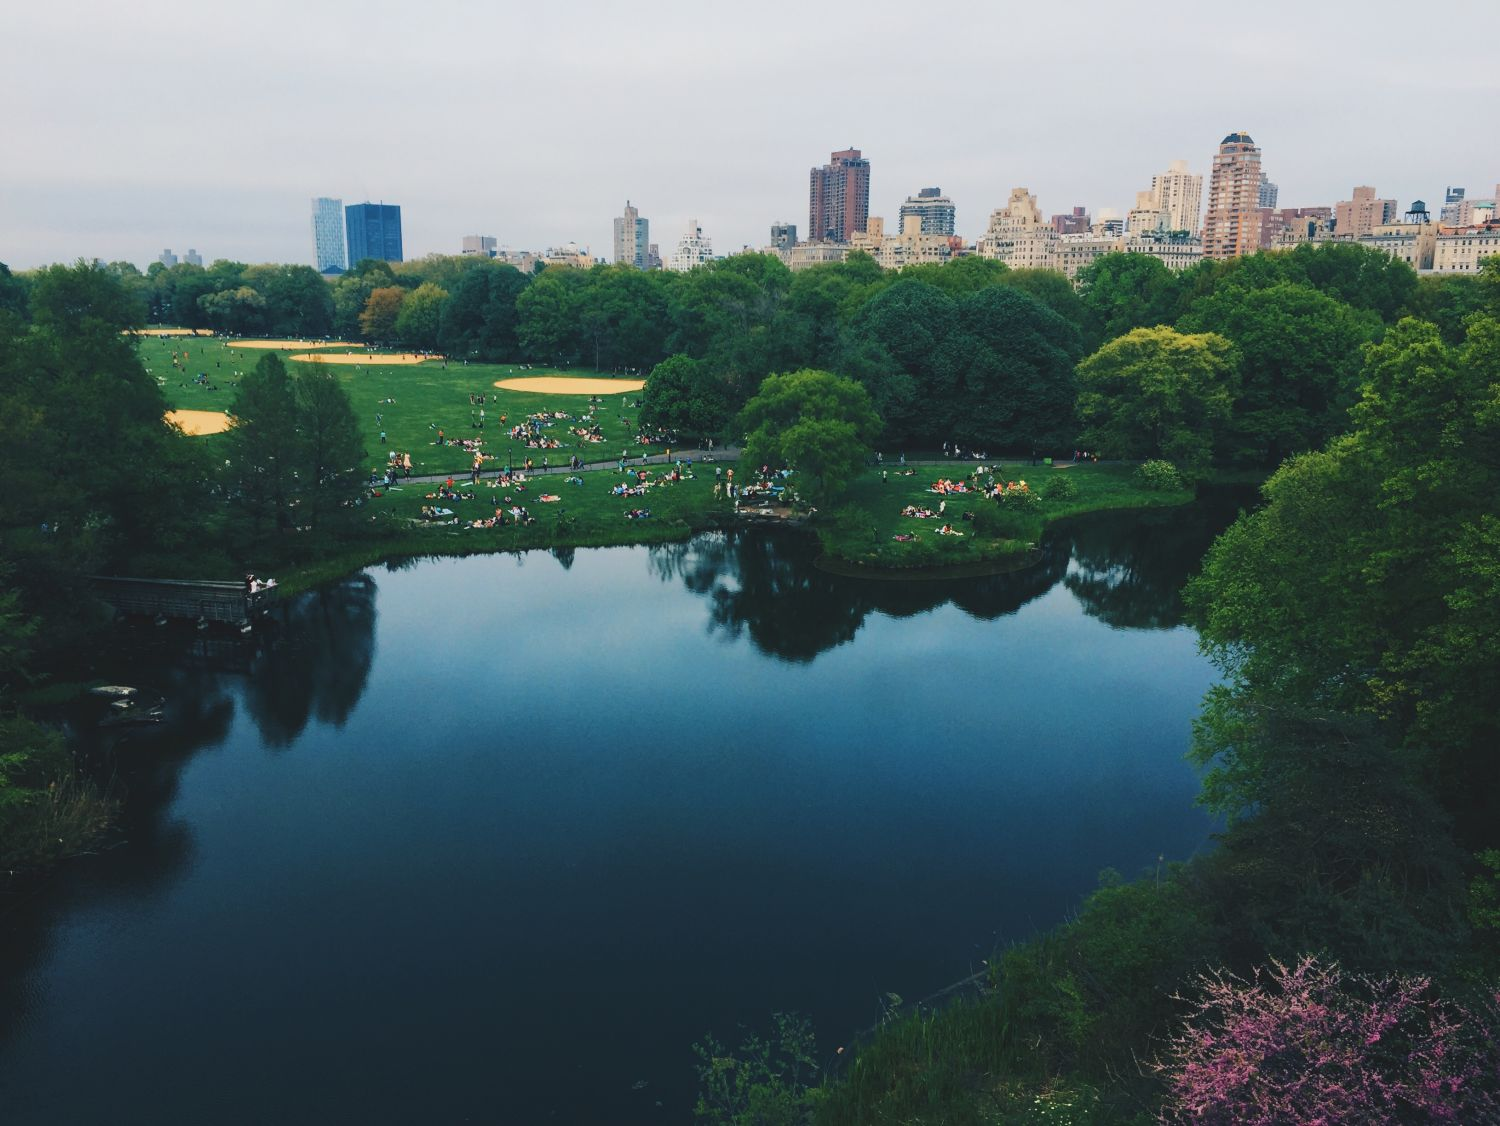 Central Park in New York; Thema: Stadt oder Land